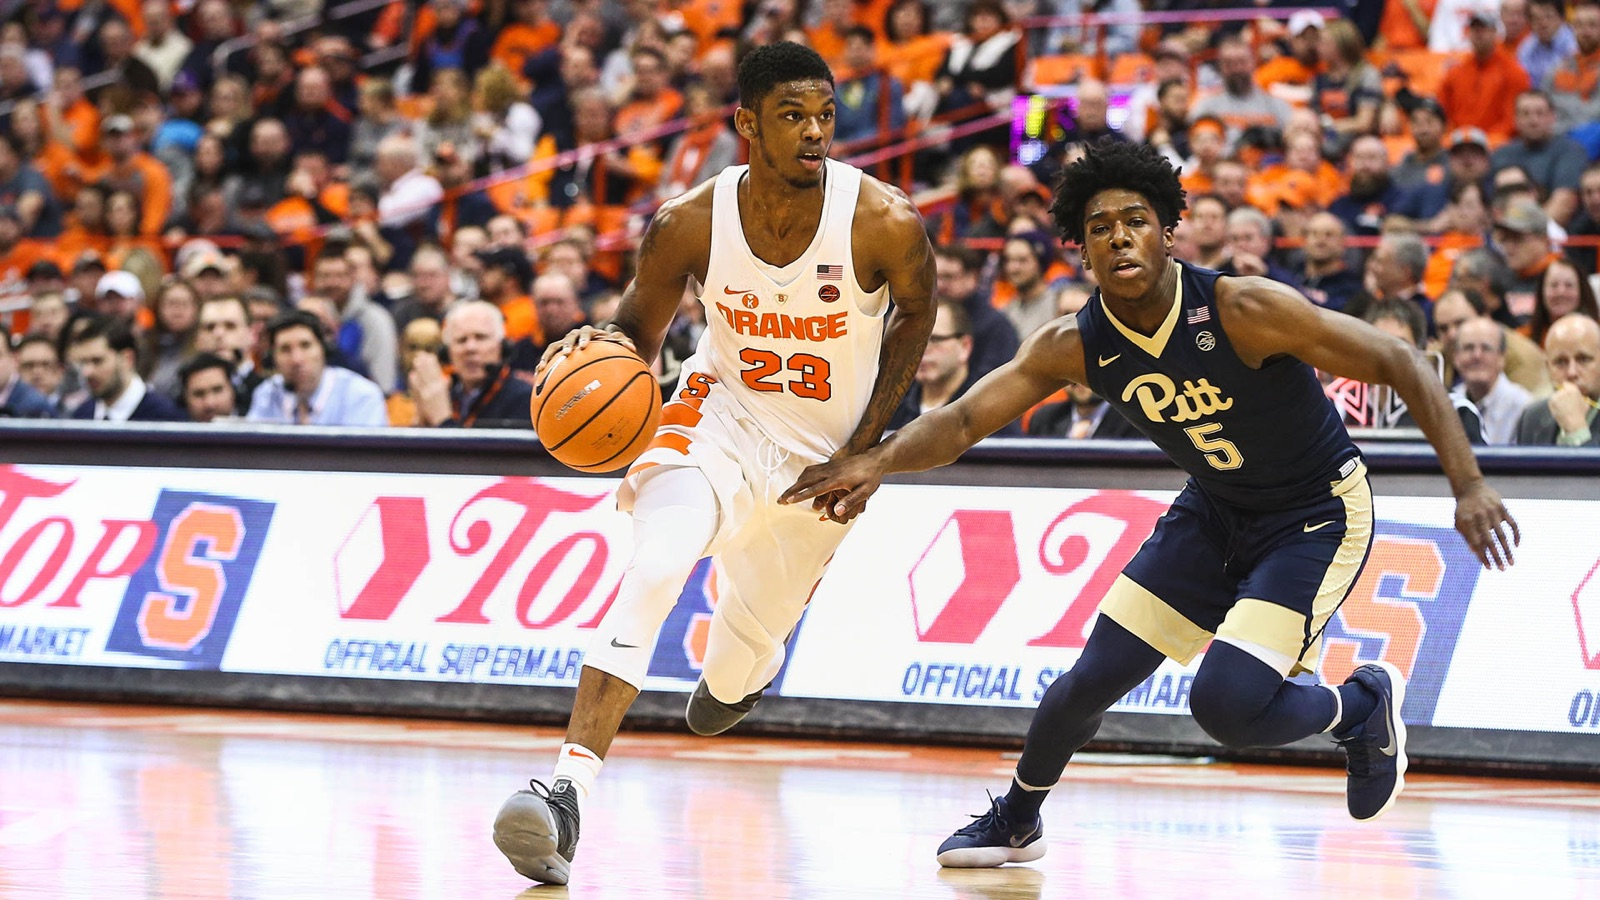 Howard Paces Orange Past Panthers Syracuse University Athletics